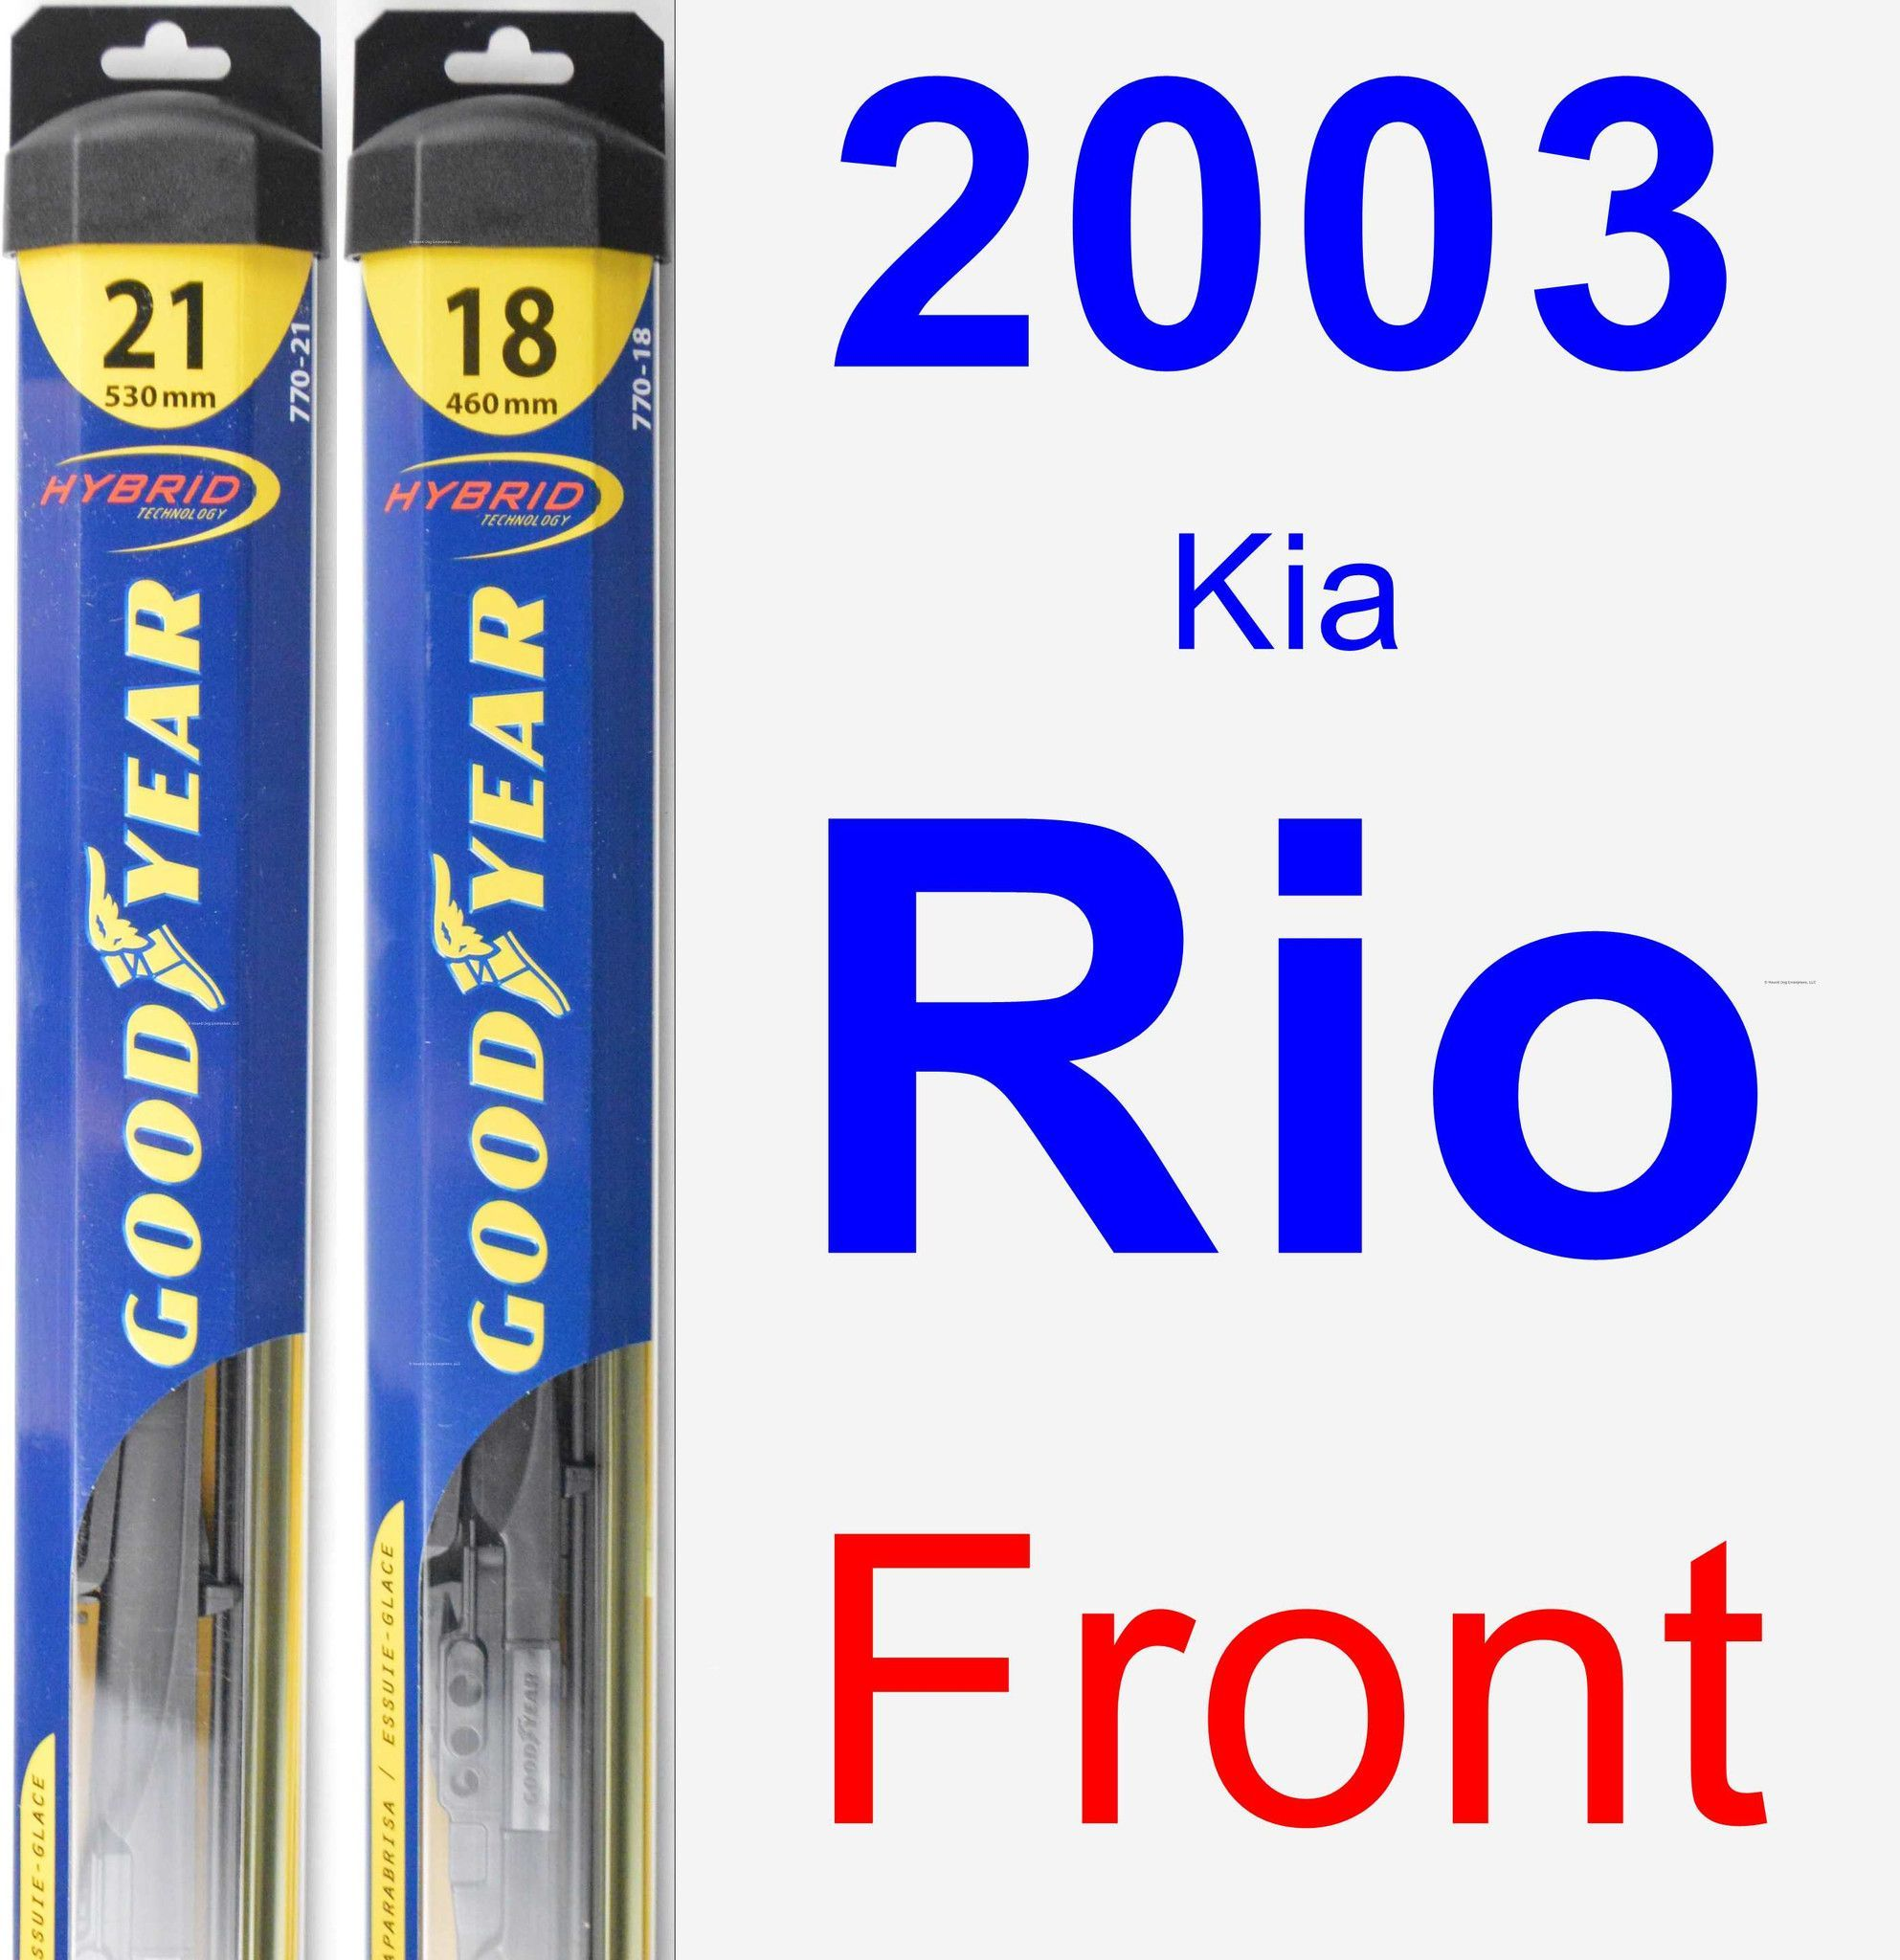 Front Wiper Blade Pack for 2003 Kia Rio - Hybrid